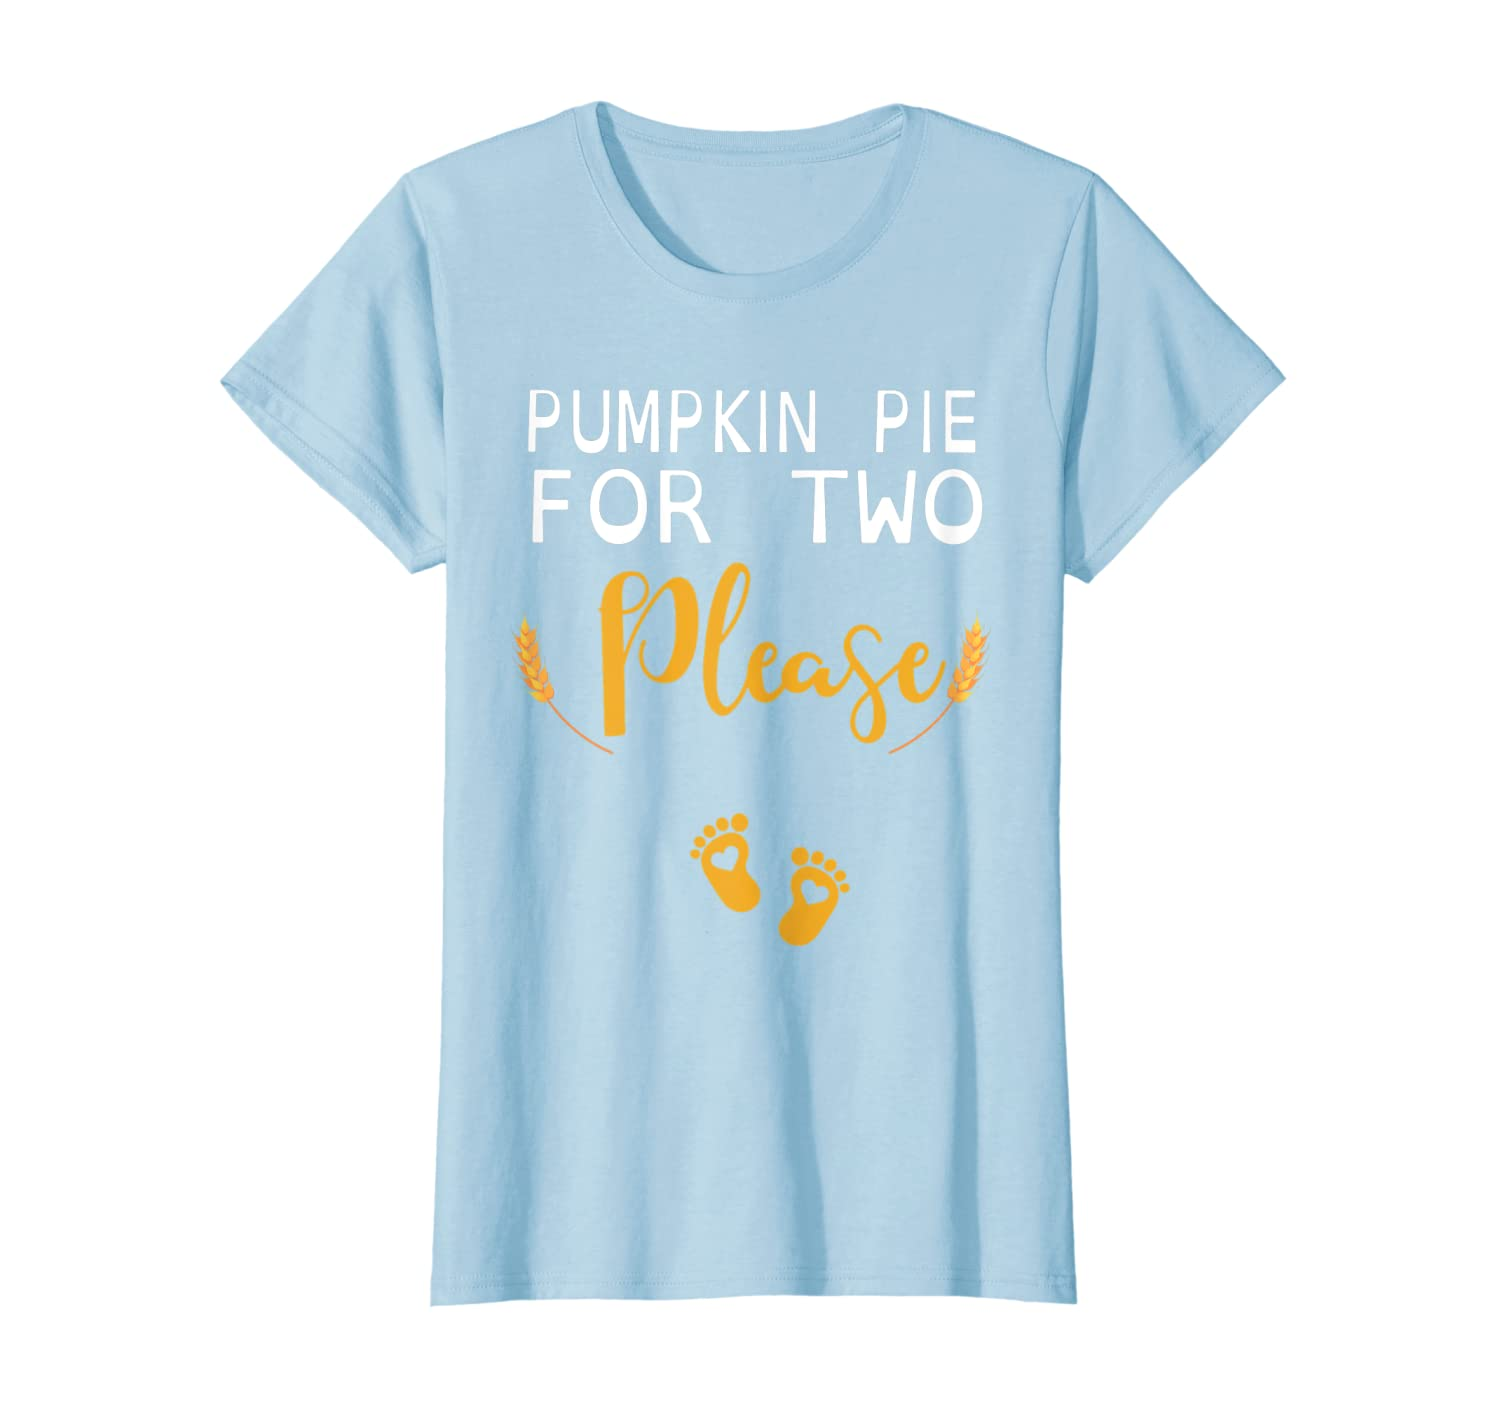 Pumpkin Pie For Two Please Pregnancy Baby Mommy Shirt